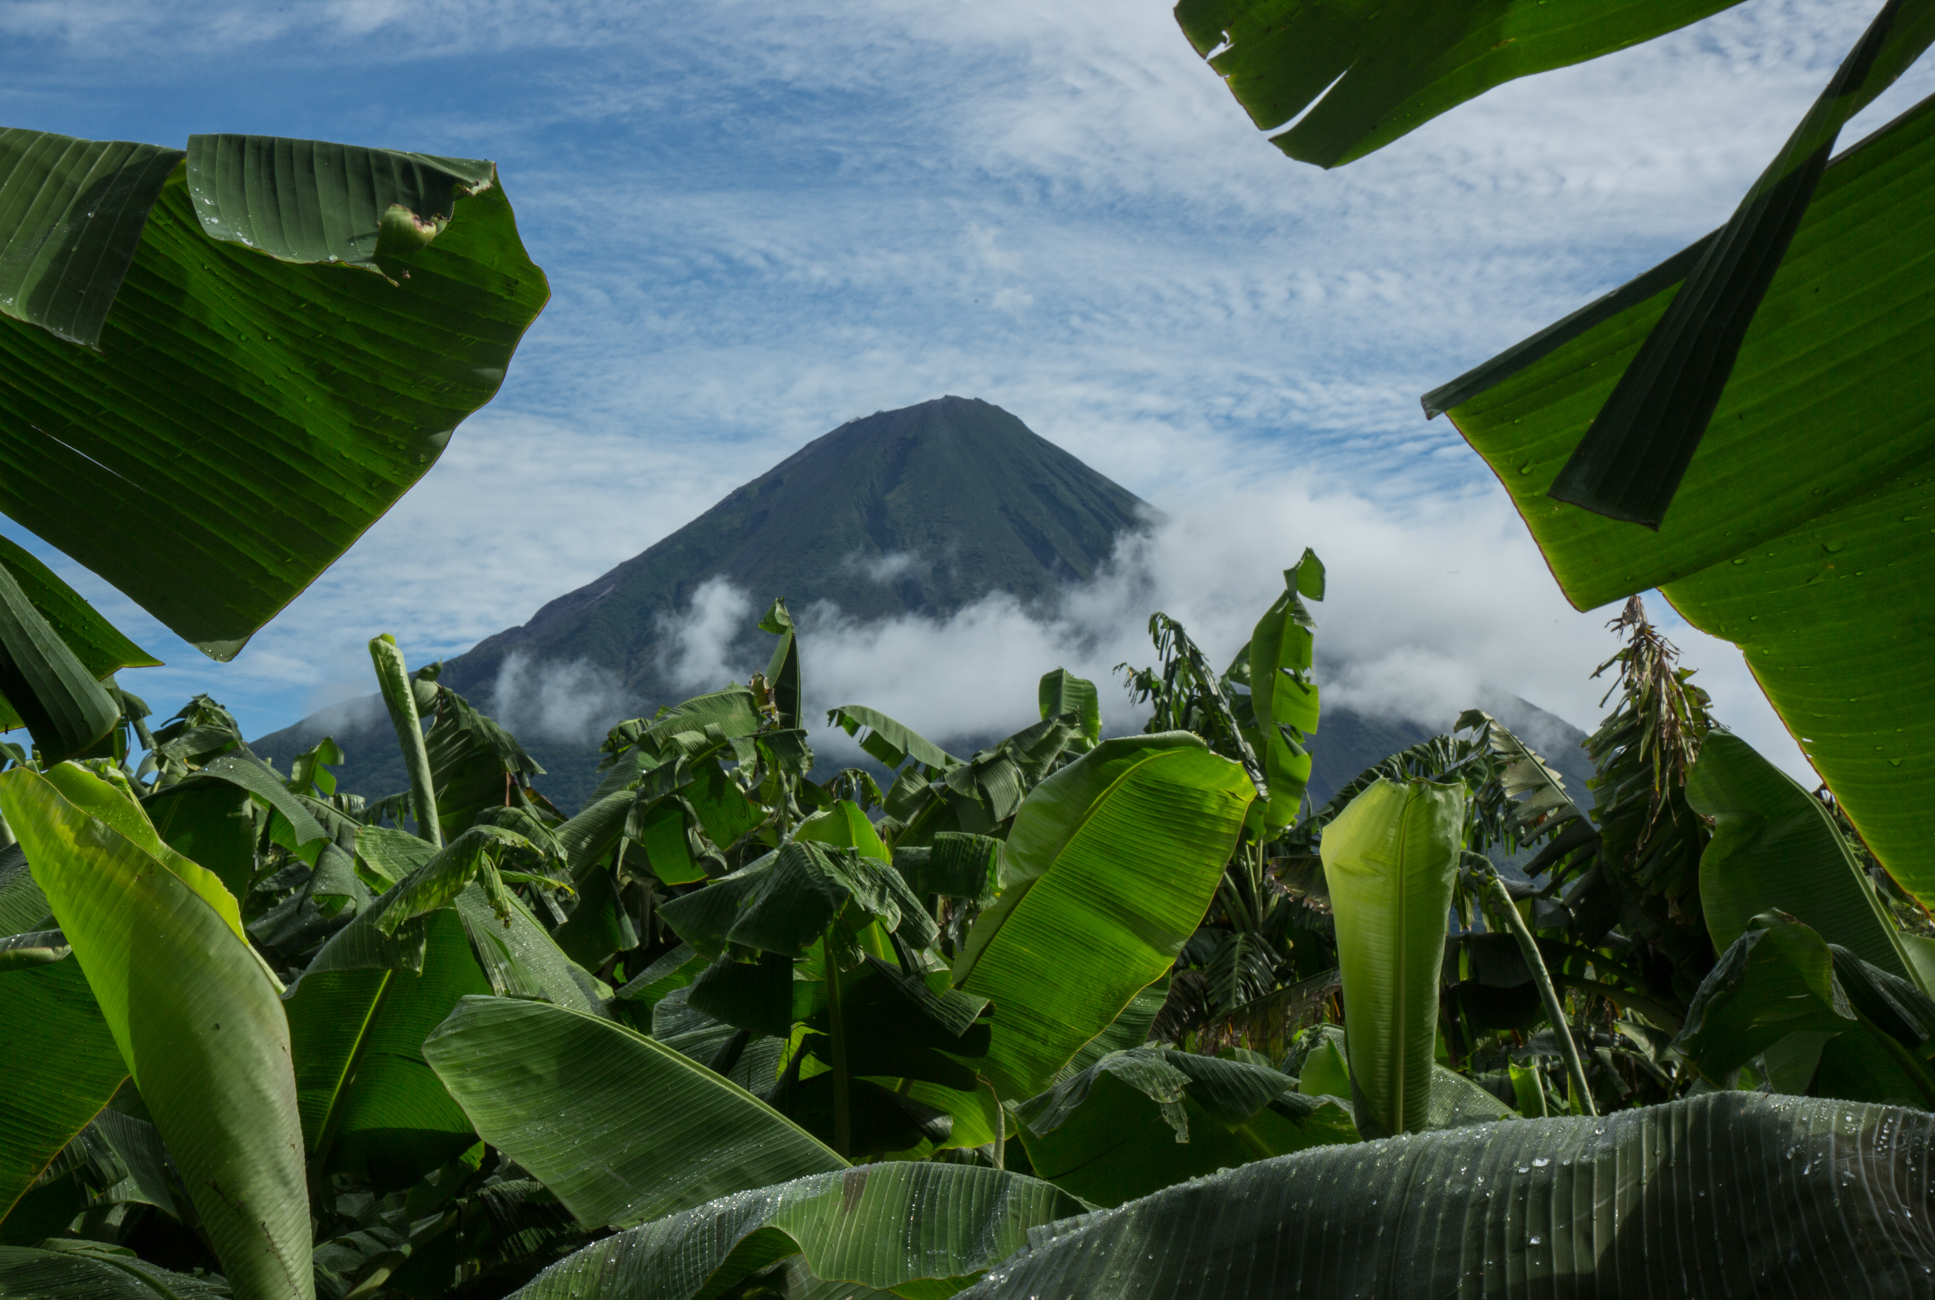 Concepcion Volcano, Ometepe, Nicaragua rises through plantain plantations. Ometepe's main export is plantains and exports to El Salvador and Honduras in addition to nationally.